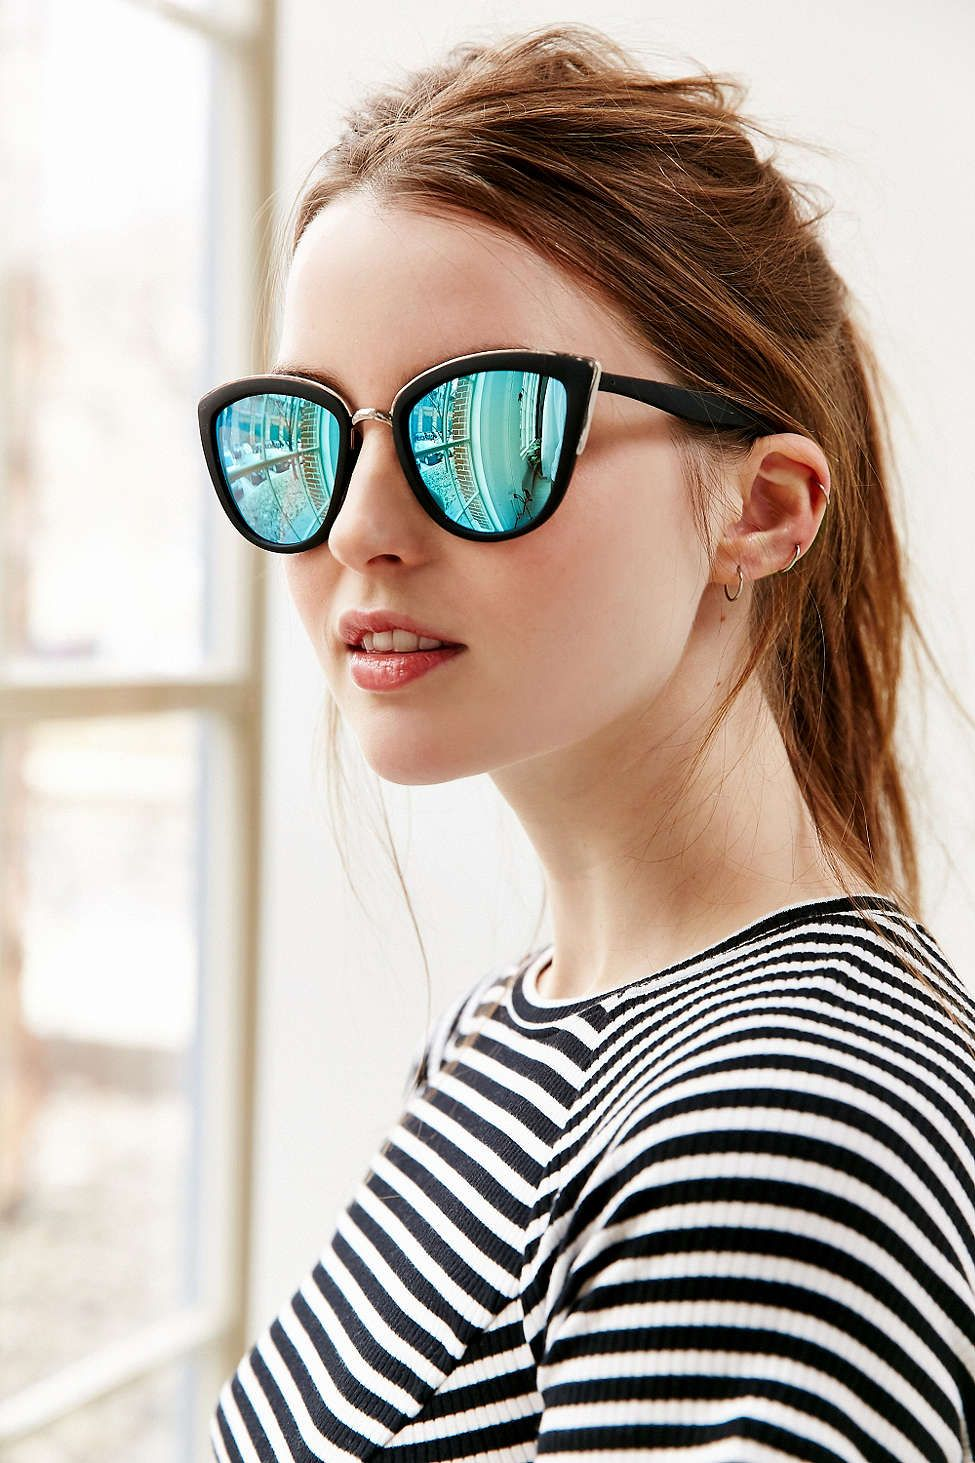 Quay My Girl Sunglasses Sunnies, Girls sunglasses and